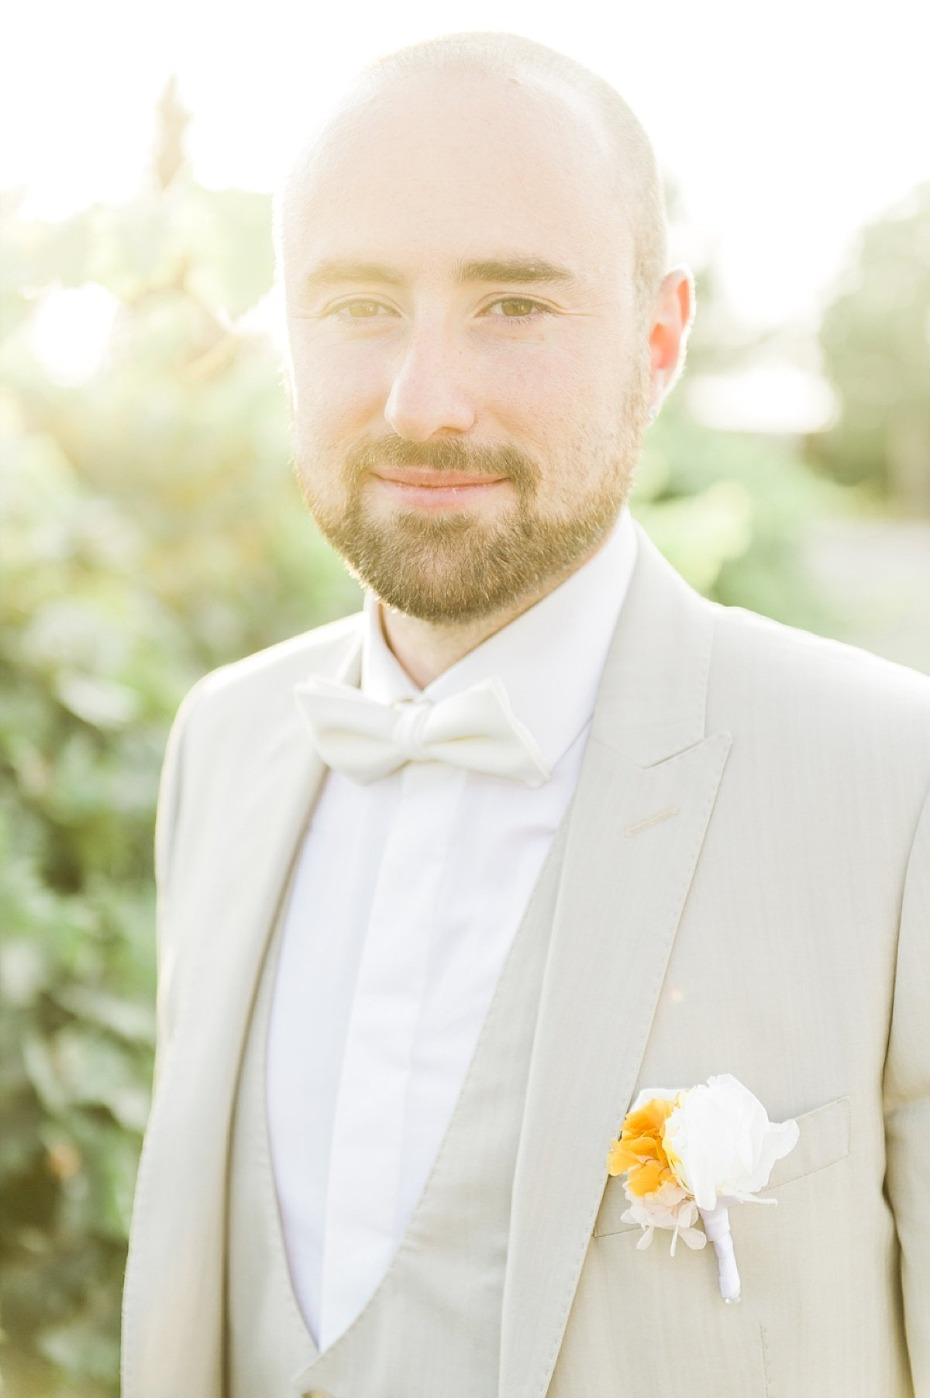 handsome groom in sand colored wedding suit